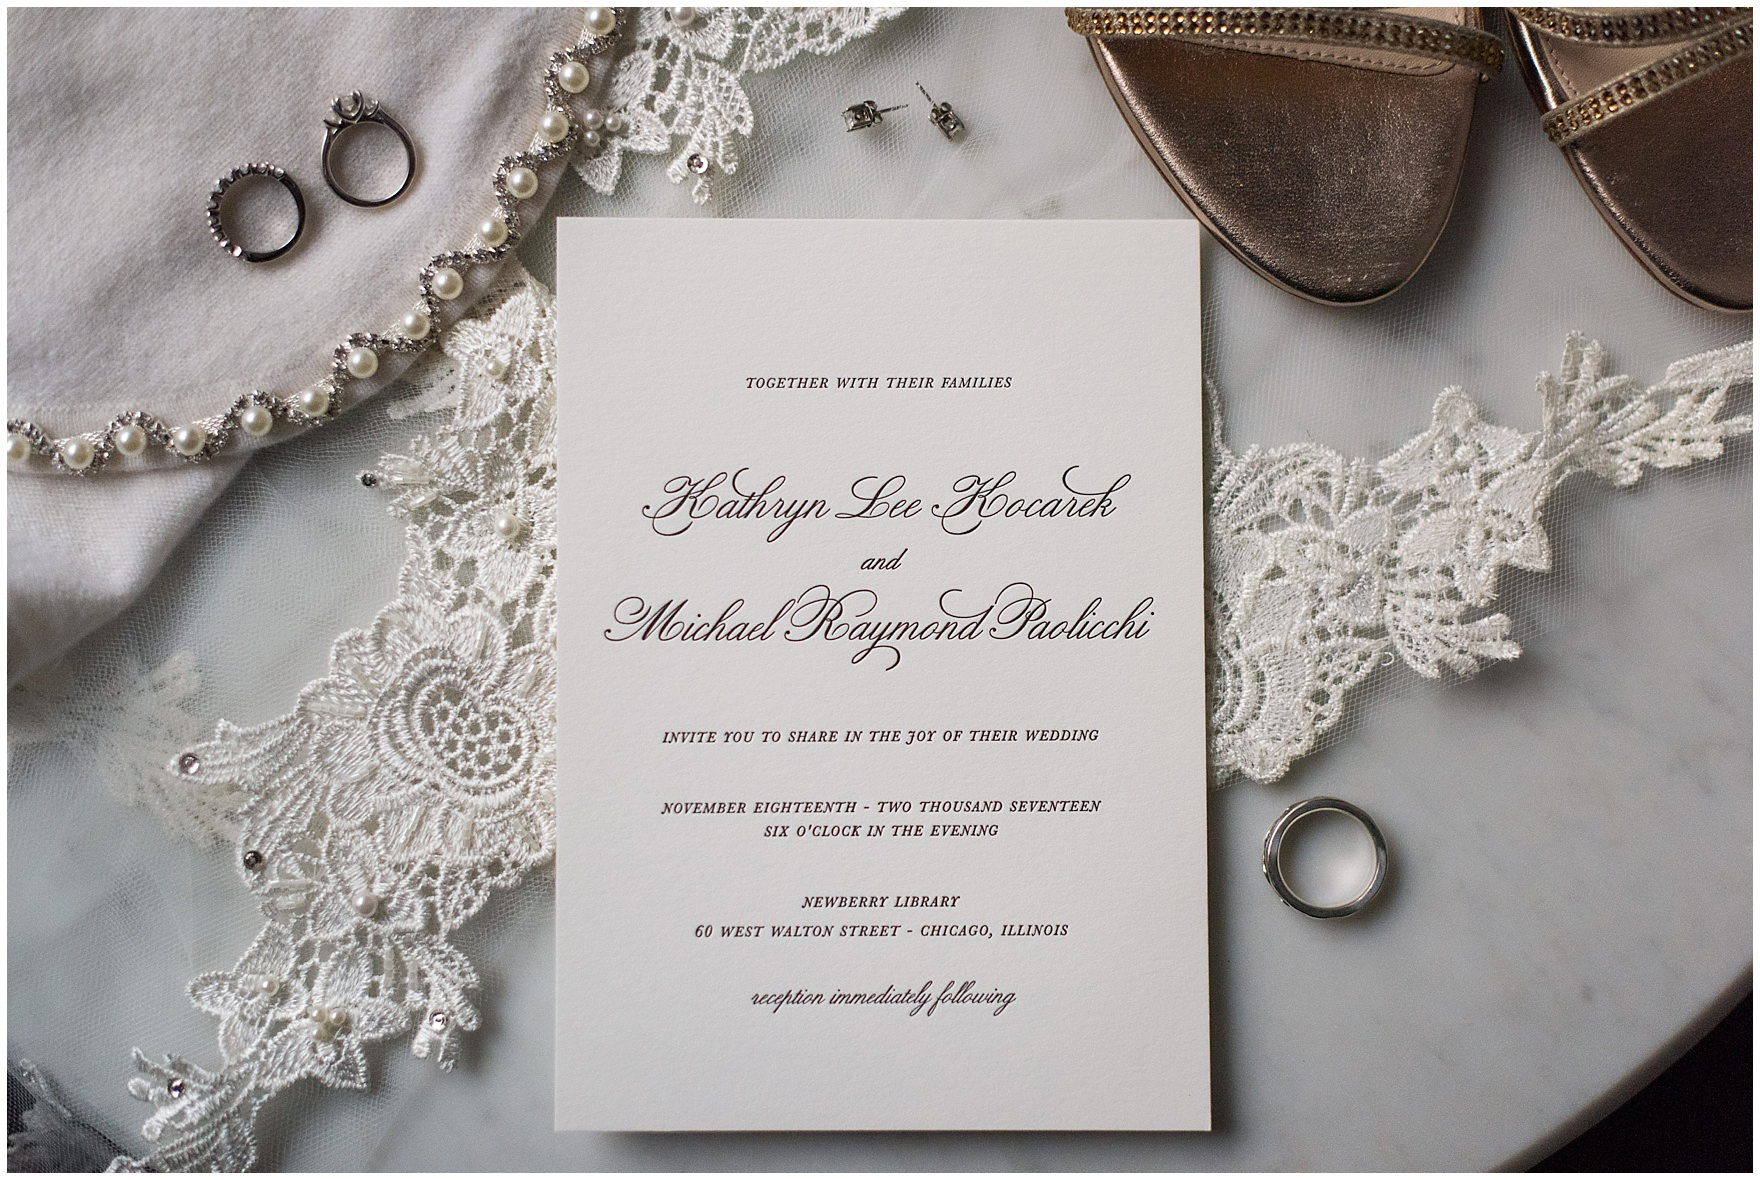 Details of a letterpresse wedding invitation with wedding rings, shoes, and veil for a Newberry Library Chicago wedding.